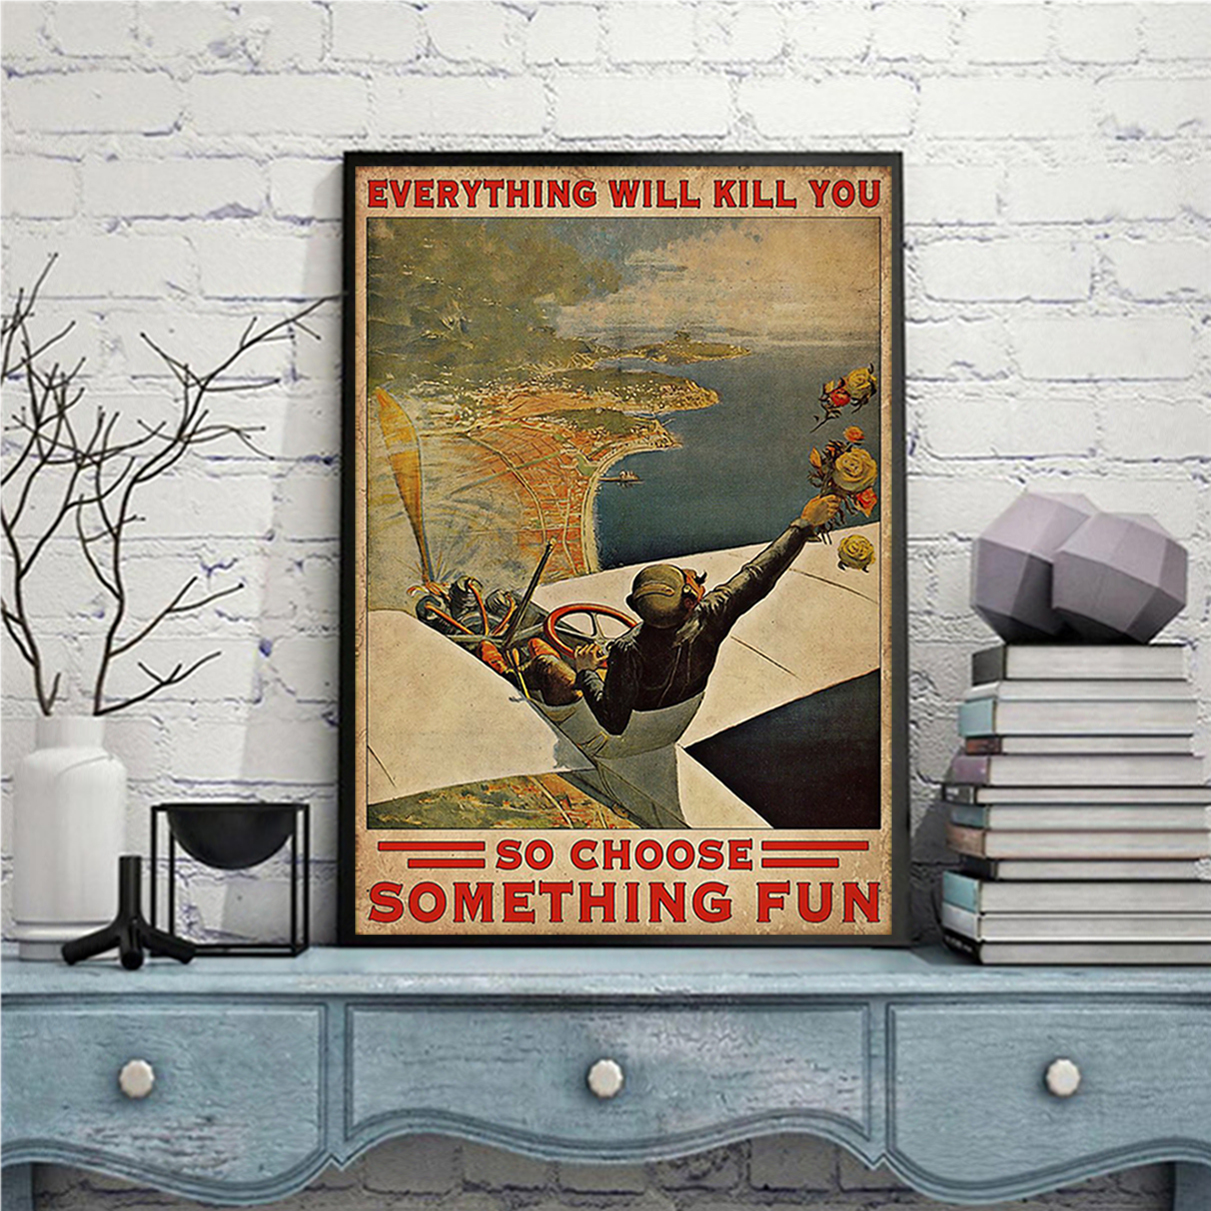 Everything will kill you so choose something fun pilot poster A2